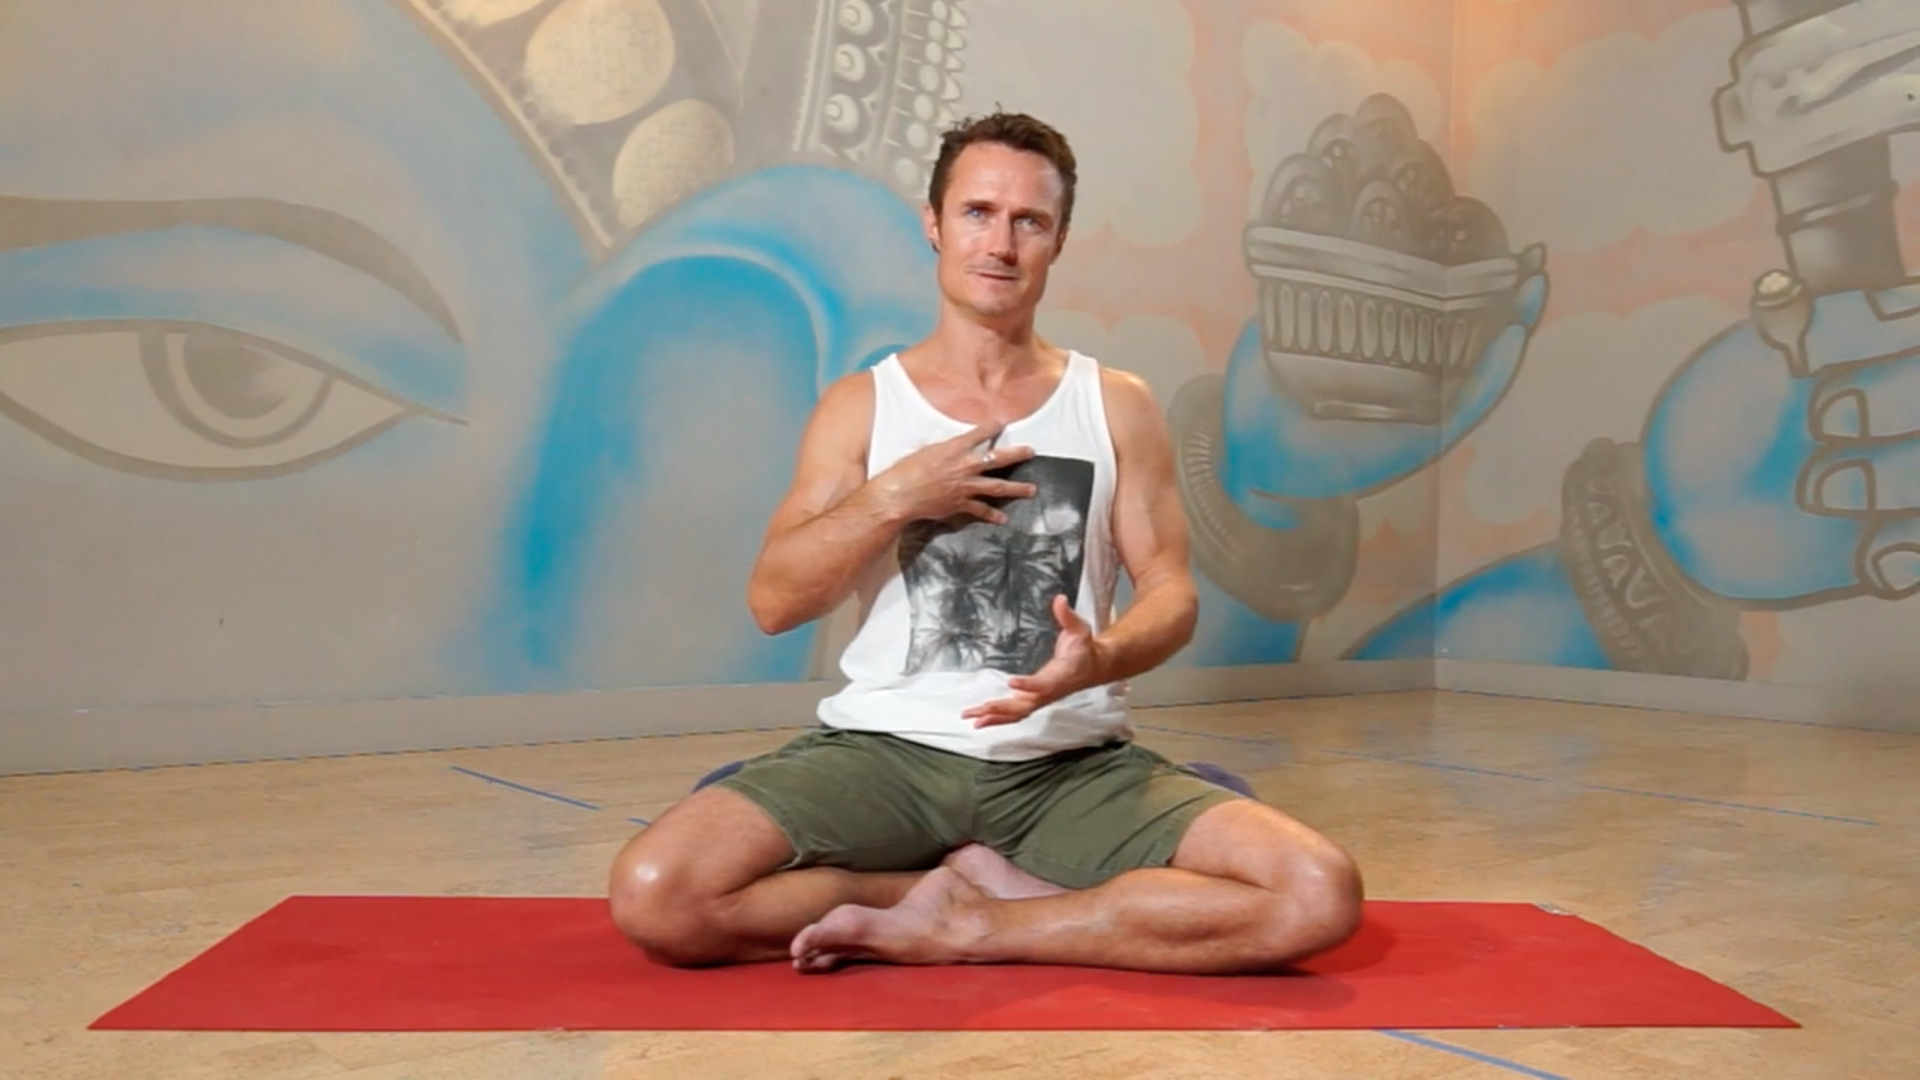 Surrender keenan crisp inspiration Power Living Australia Yoga YOGAHOLICS